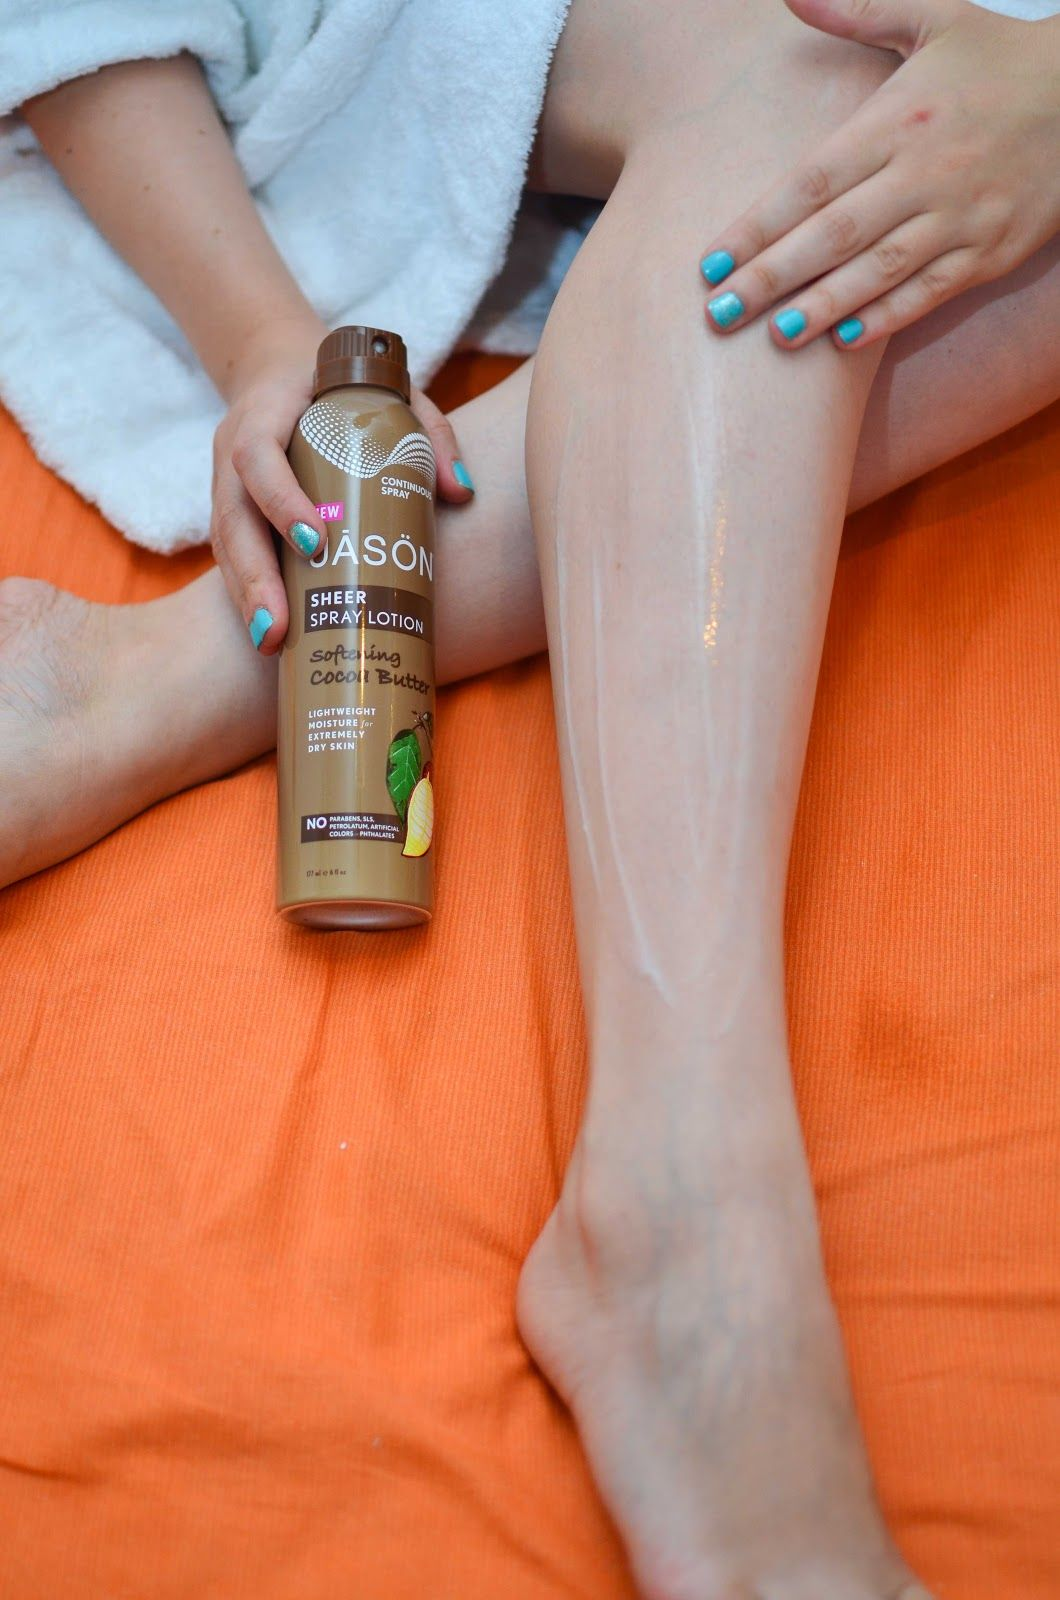 Jason sheer spray lotion review lotion body care